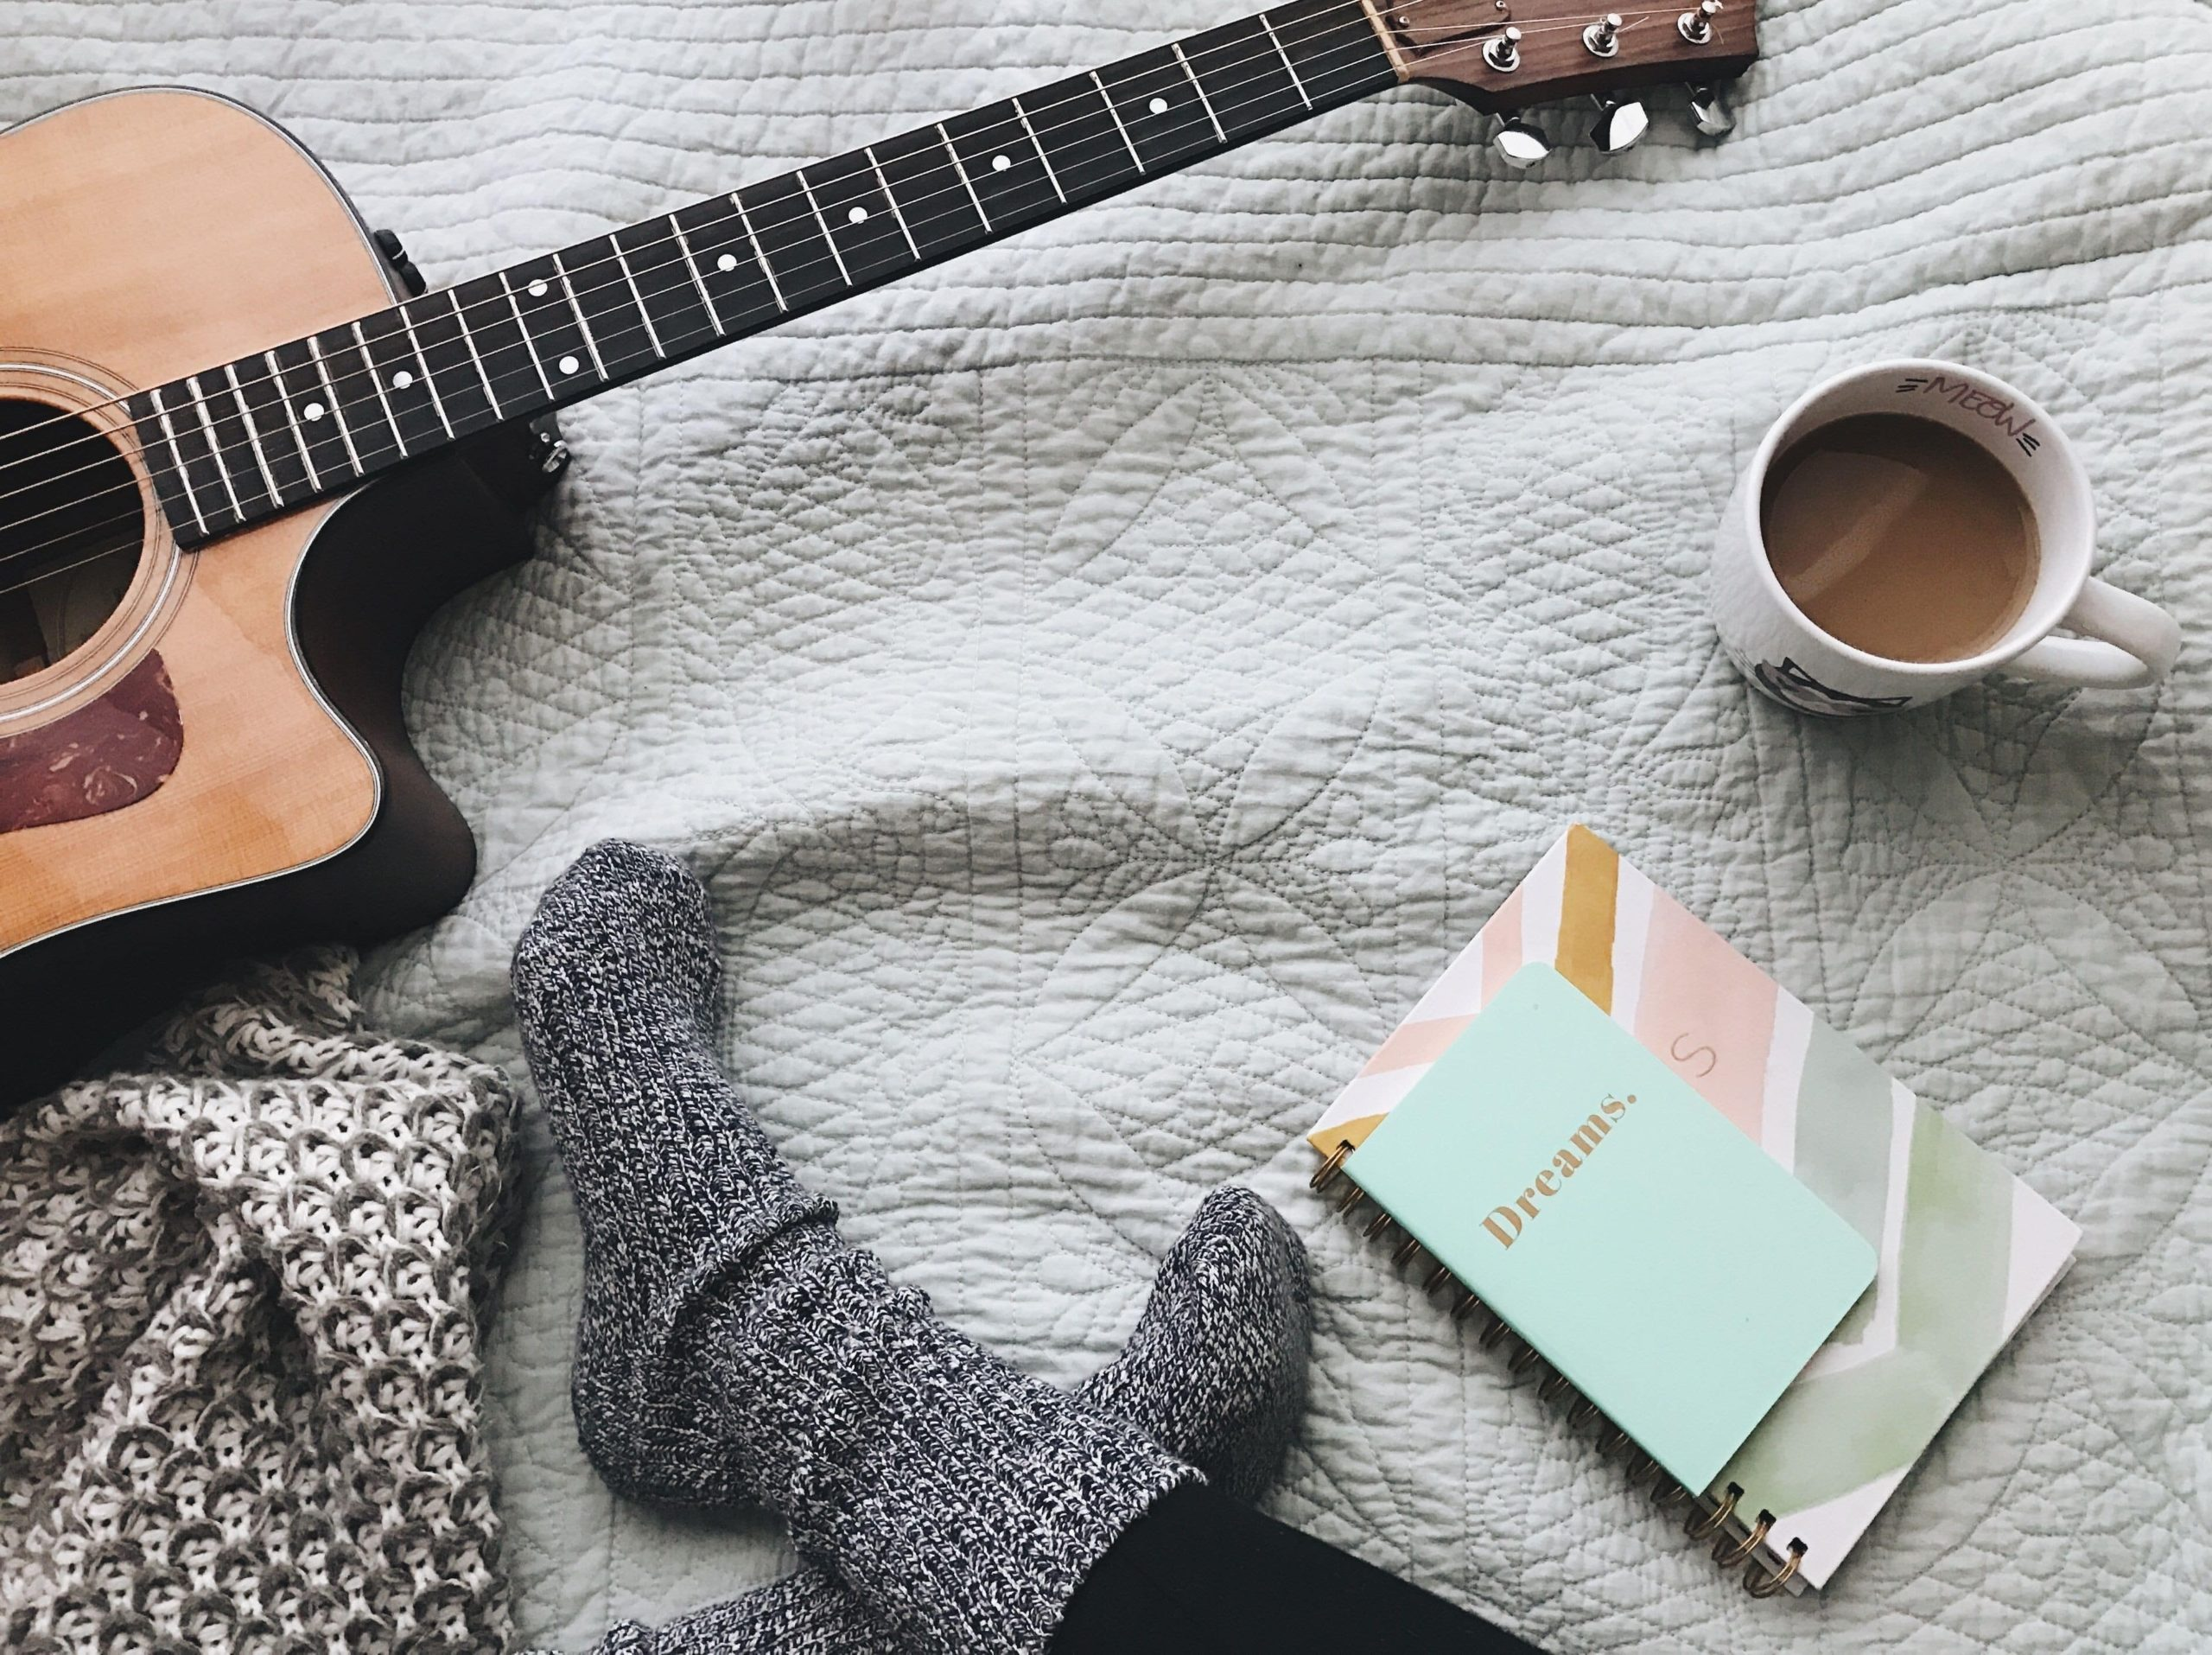 a persons' sock covered feet sat with a guitar, mug of coffee and a notepad.